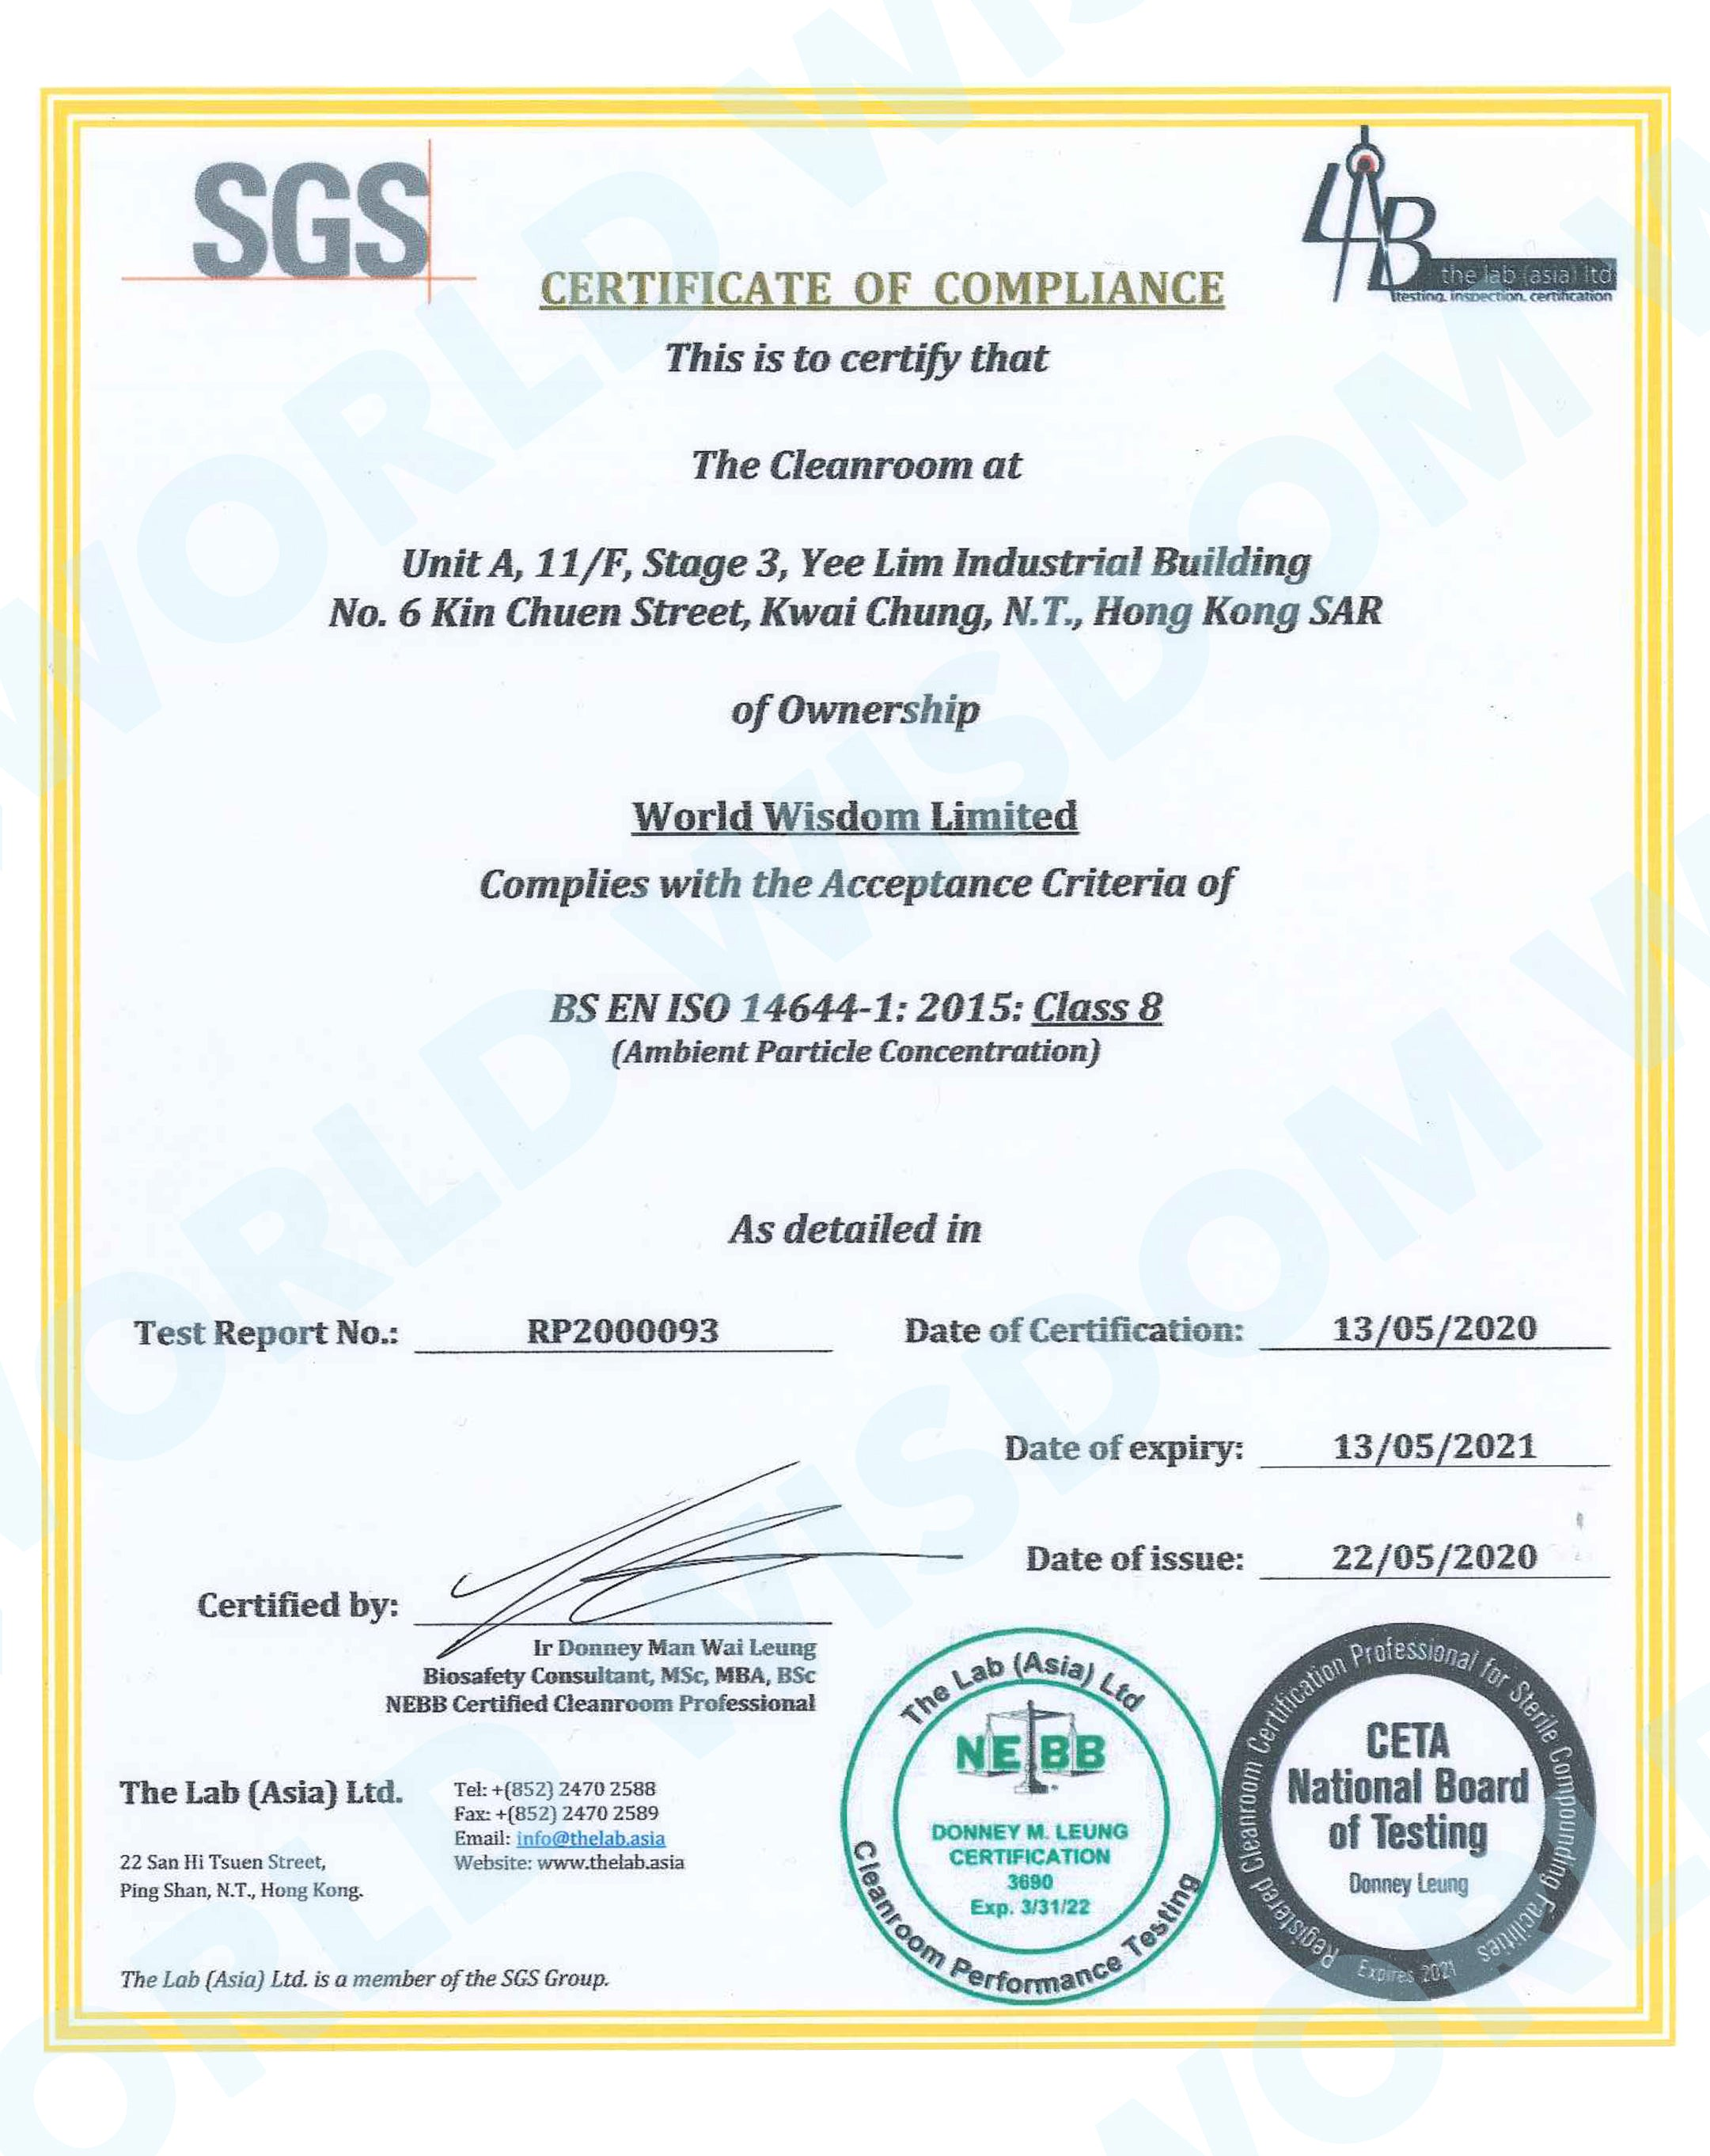 SGS CERTIFICATE ISO 14644-1 CLASS 8